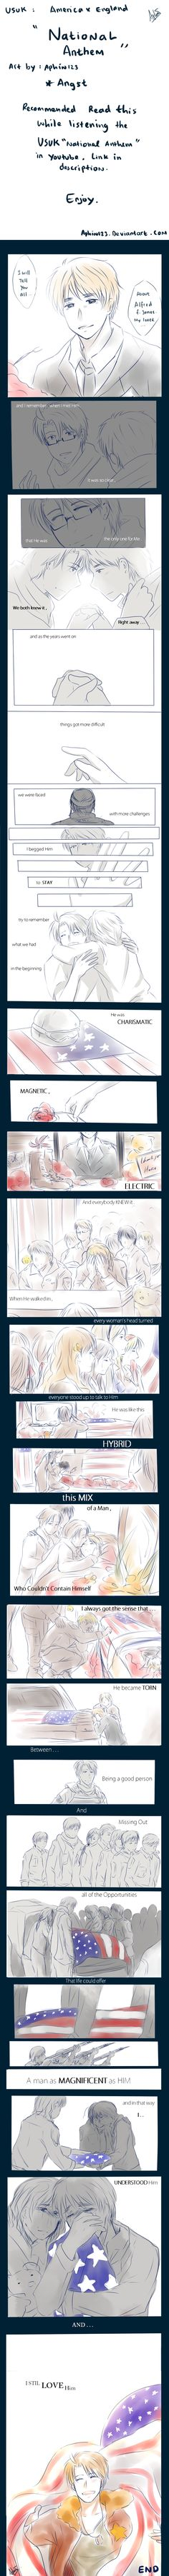 OH MY GAWD THE TEARS SOMEONE I NEED A TISSE STAT ARU HOLY CRAP MY HEART WHY?! I DON'T SHIP YAOI EITHER!